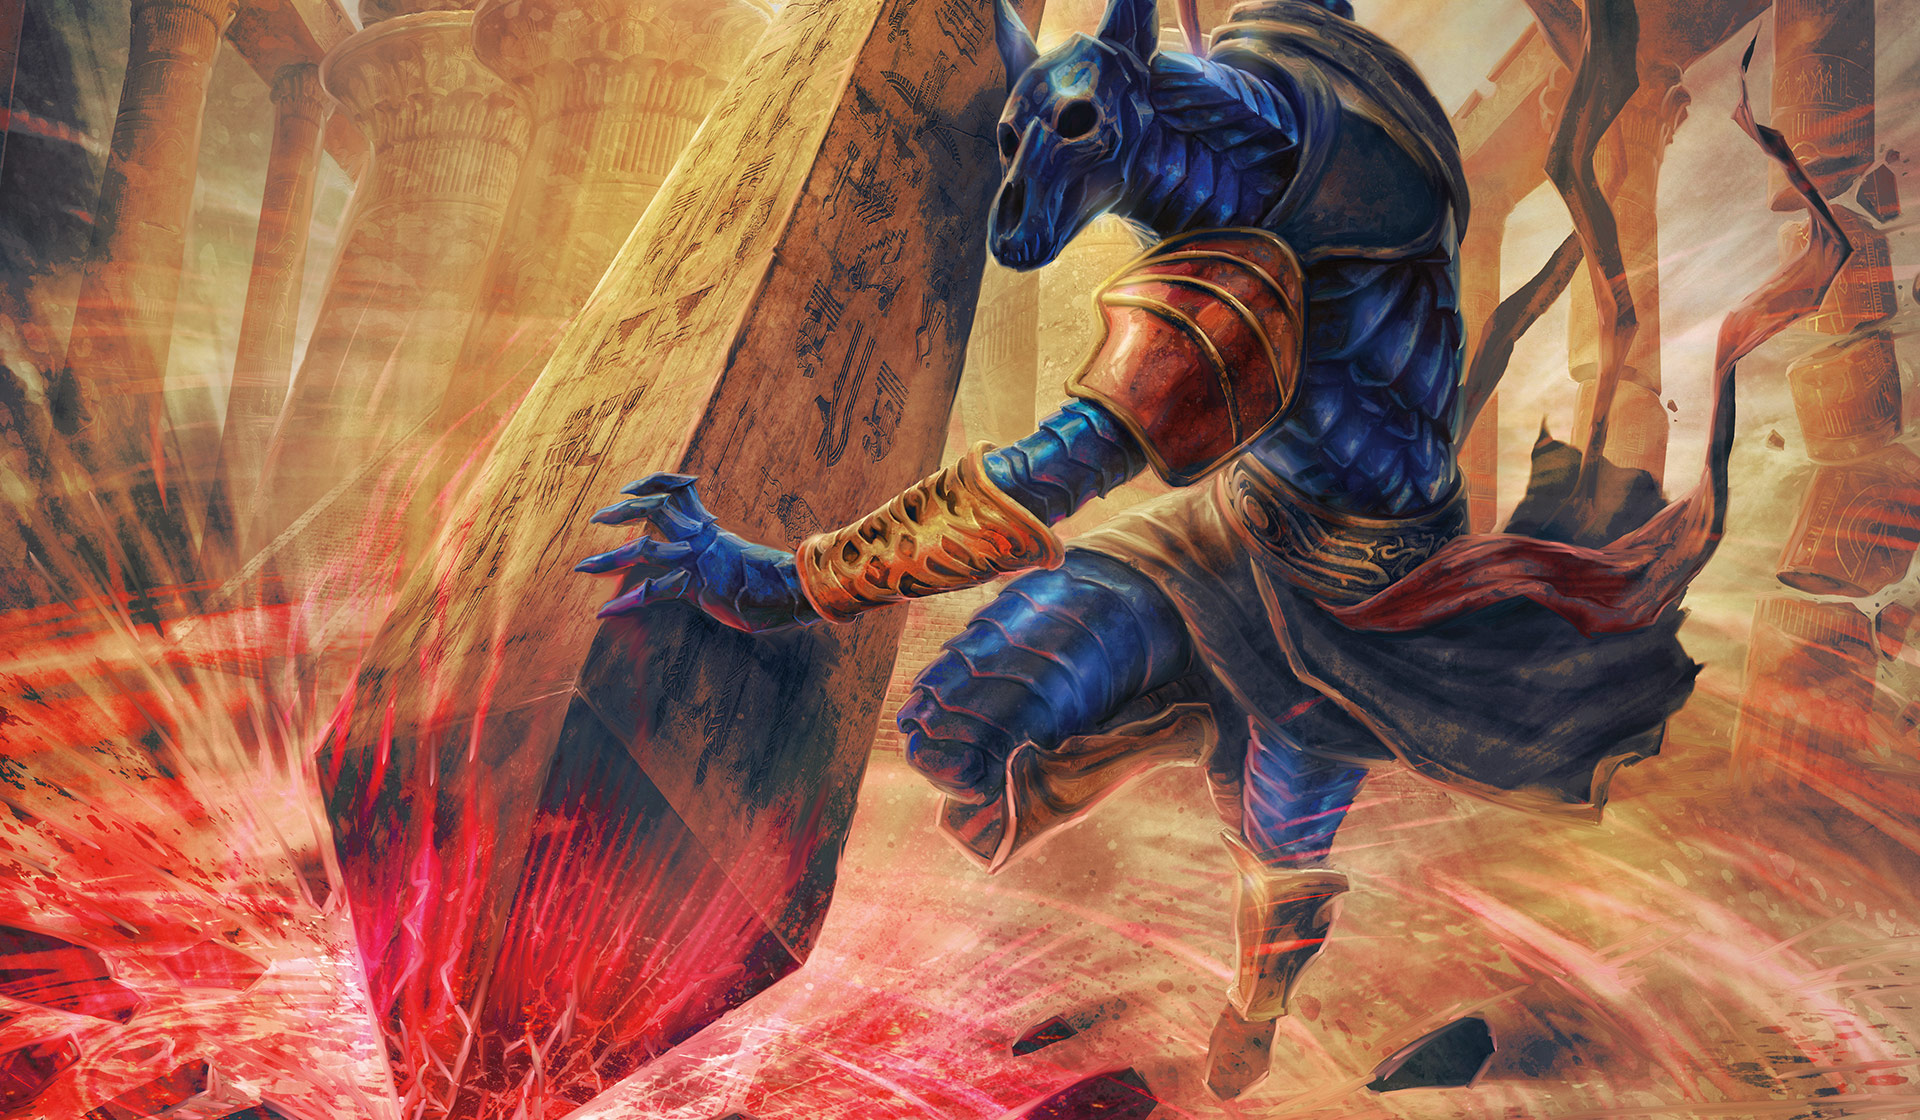 magic the gathering dating site Eventbrite - goodnow library presents magic the gathering club - saturday, september 23, 2017 at goodnow library, sudbury, ma find event and ticket information.